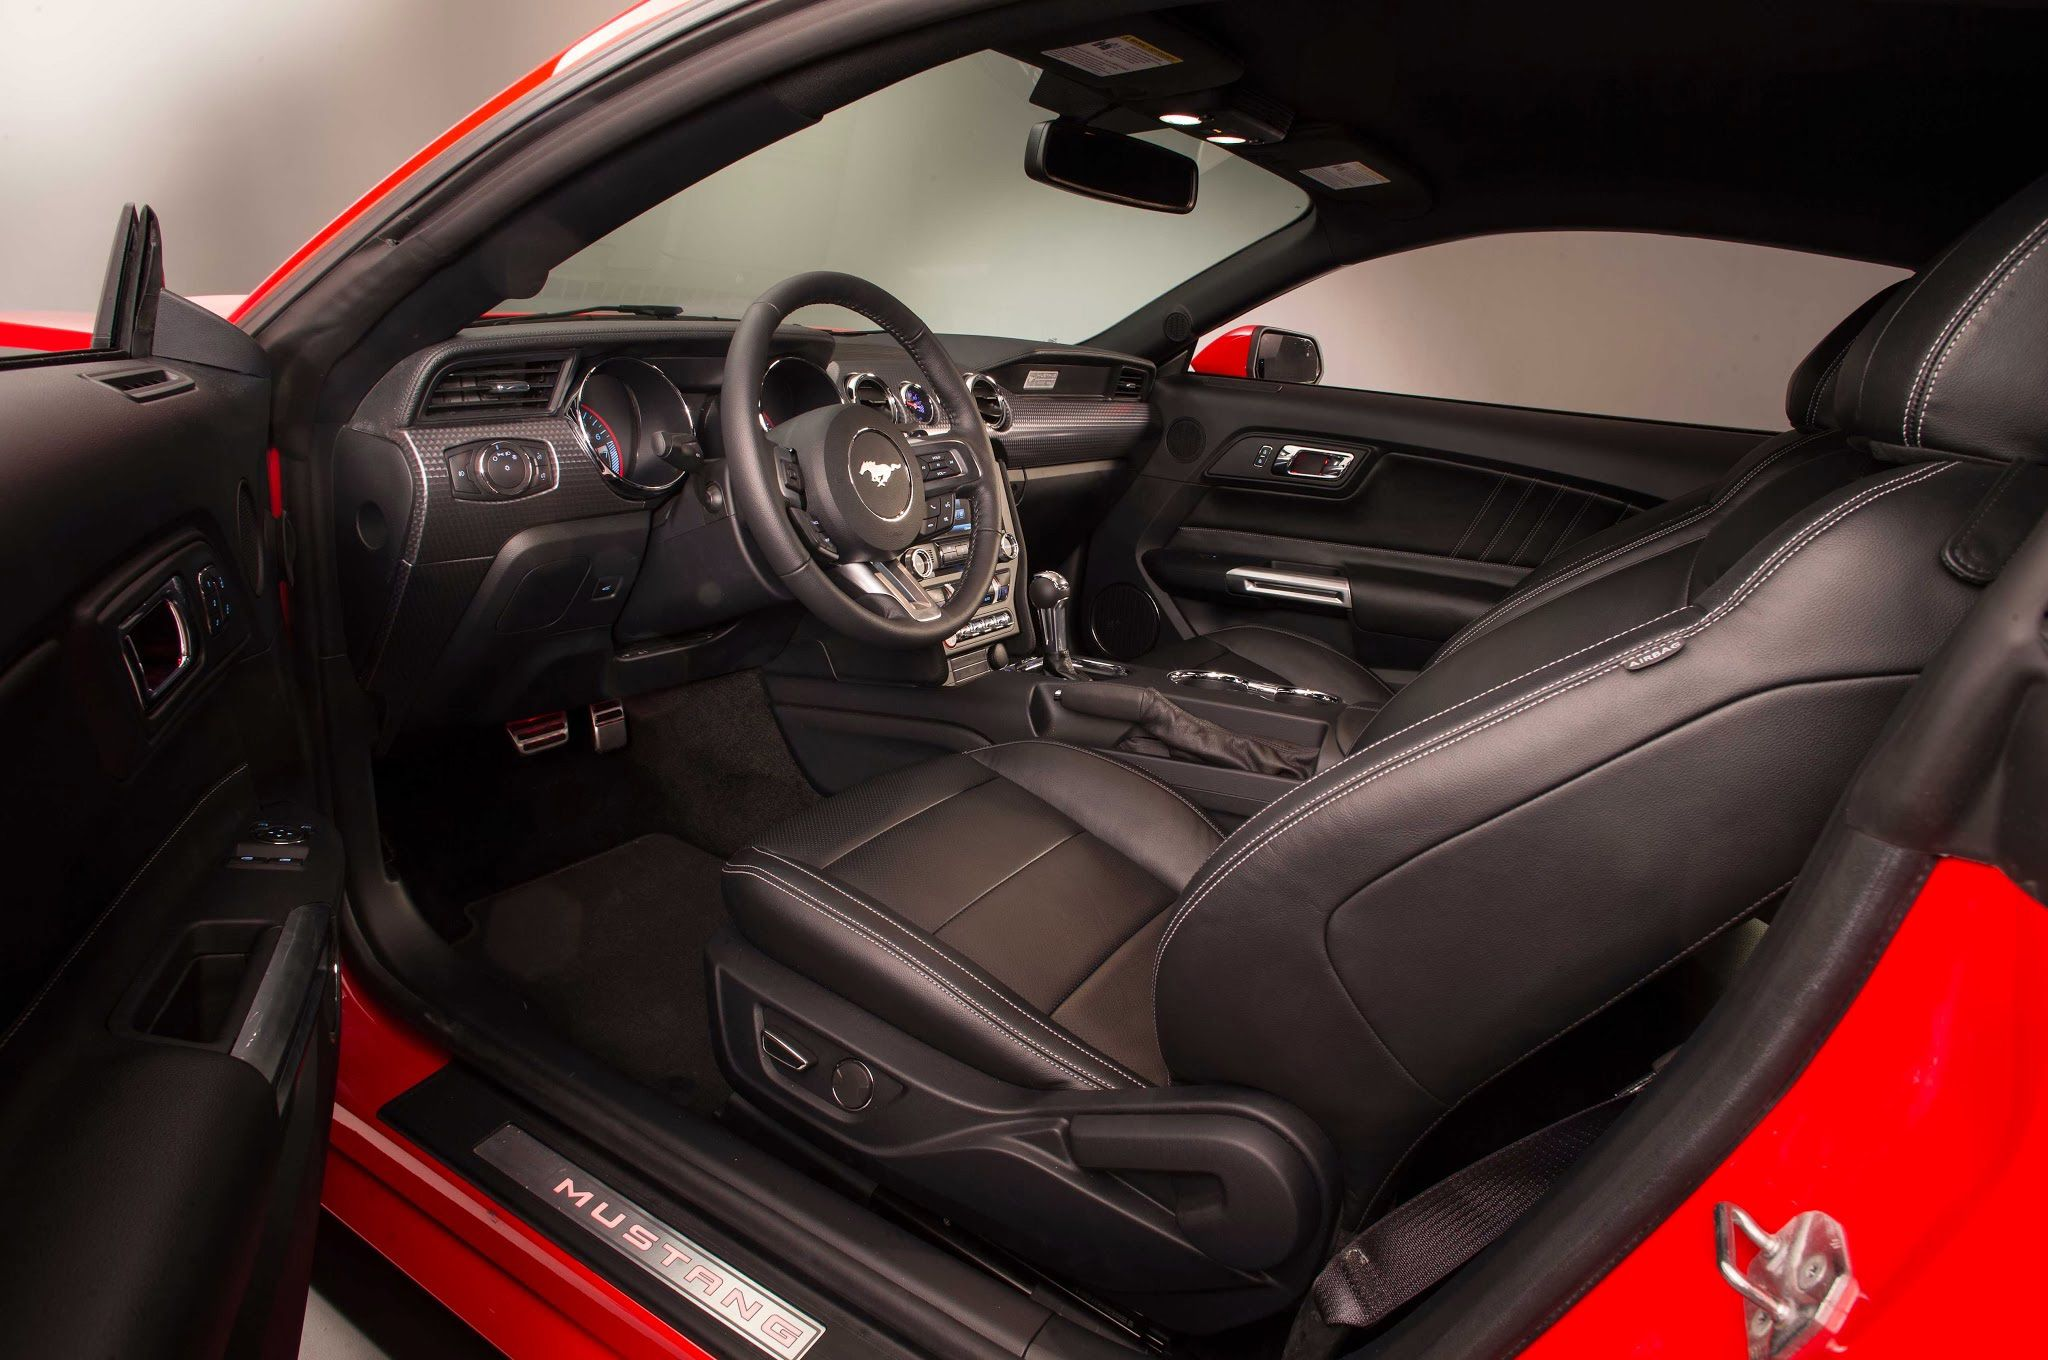 2015 Ford Mustang 5.0, Red, Interior, Through Driver Door